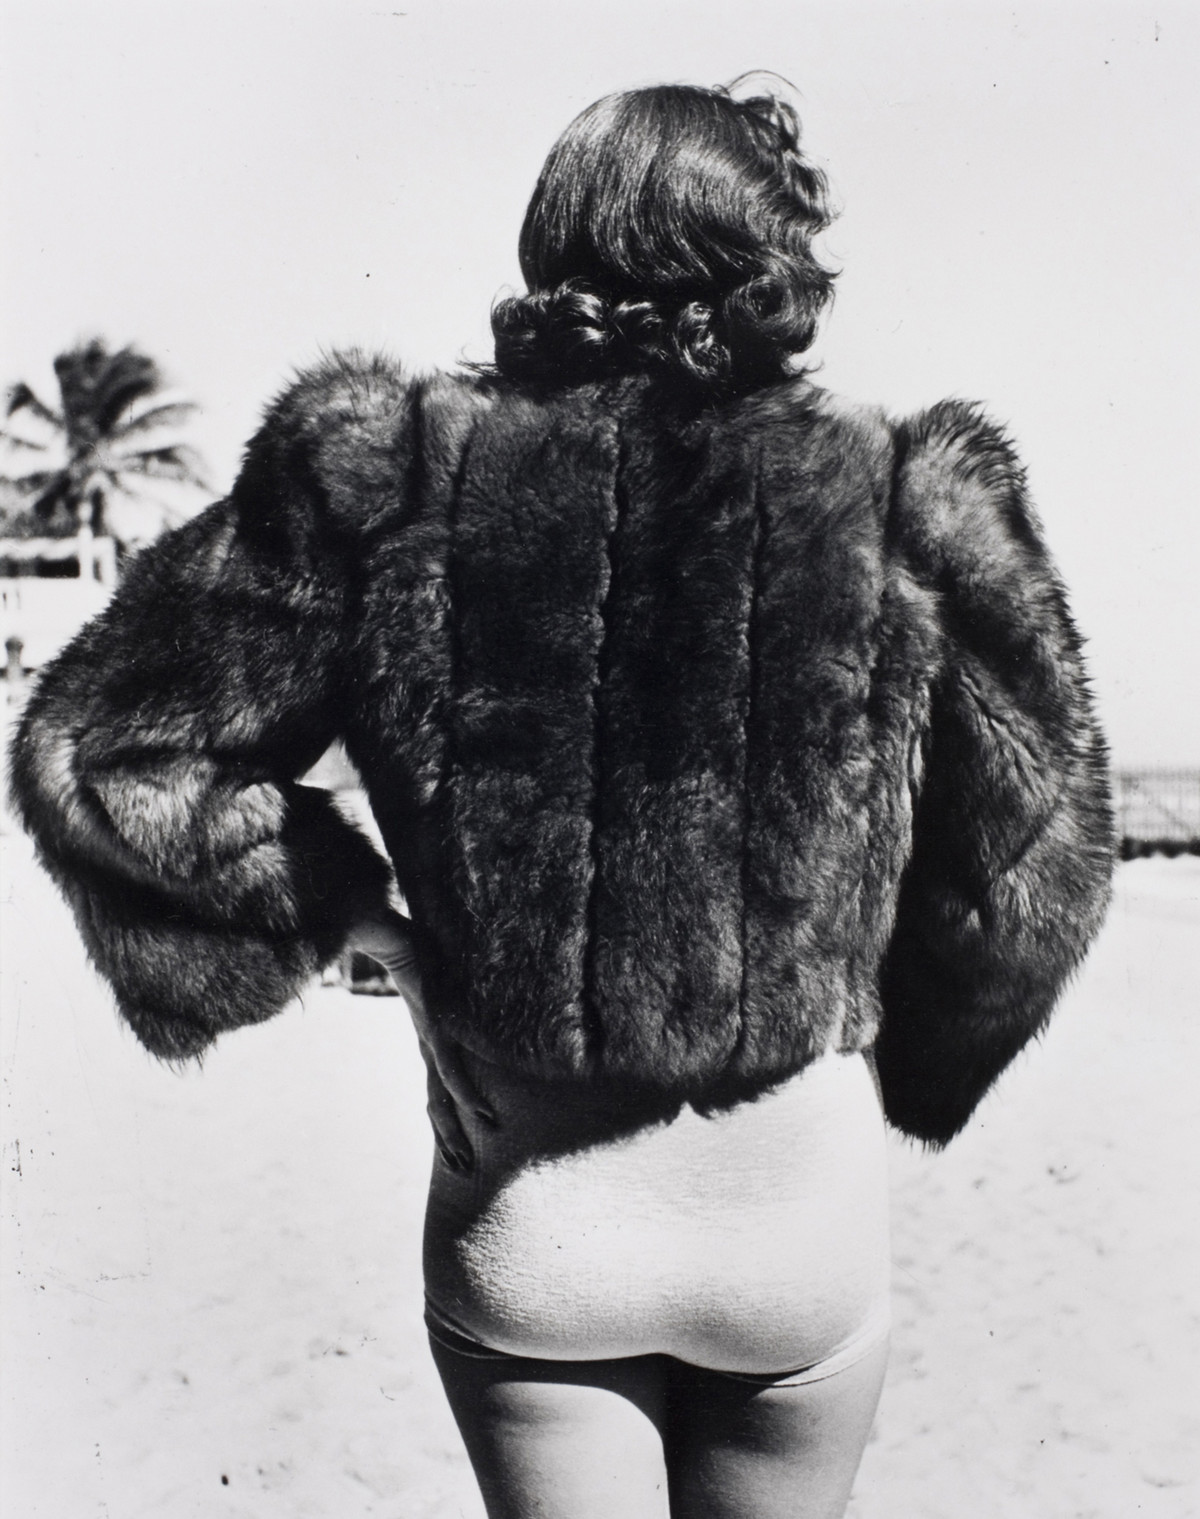 A New Yorker on vacation in Miami Beach, Florida, USA, 1940.